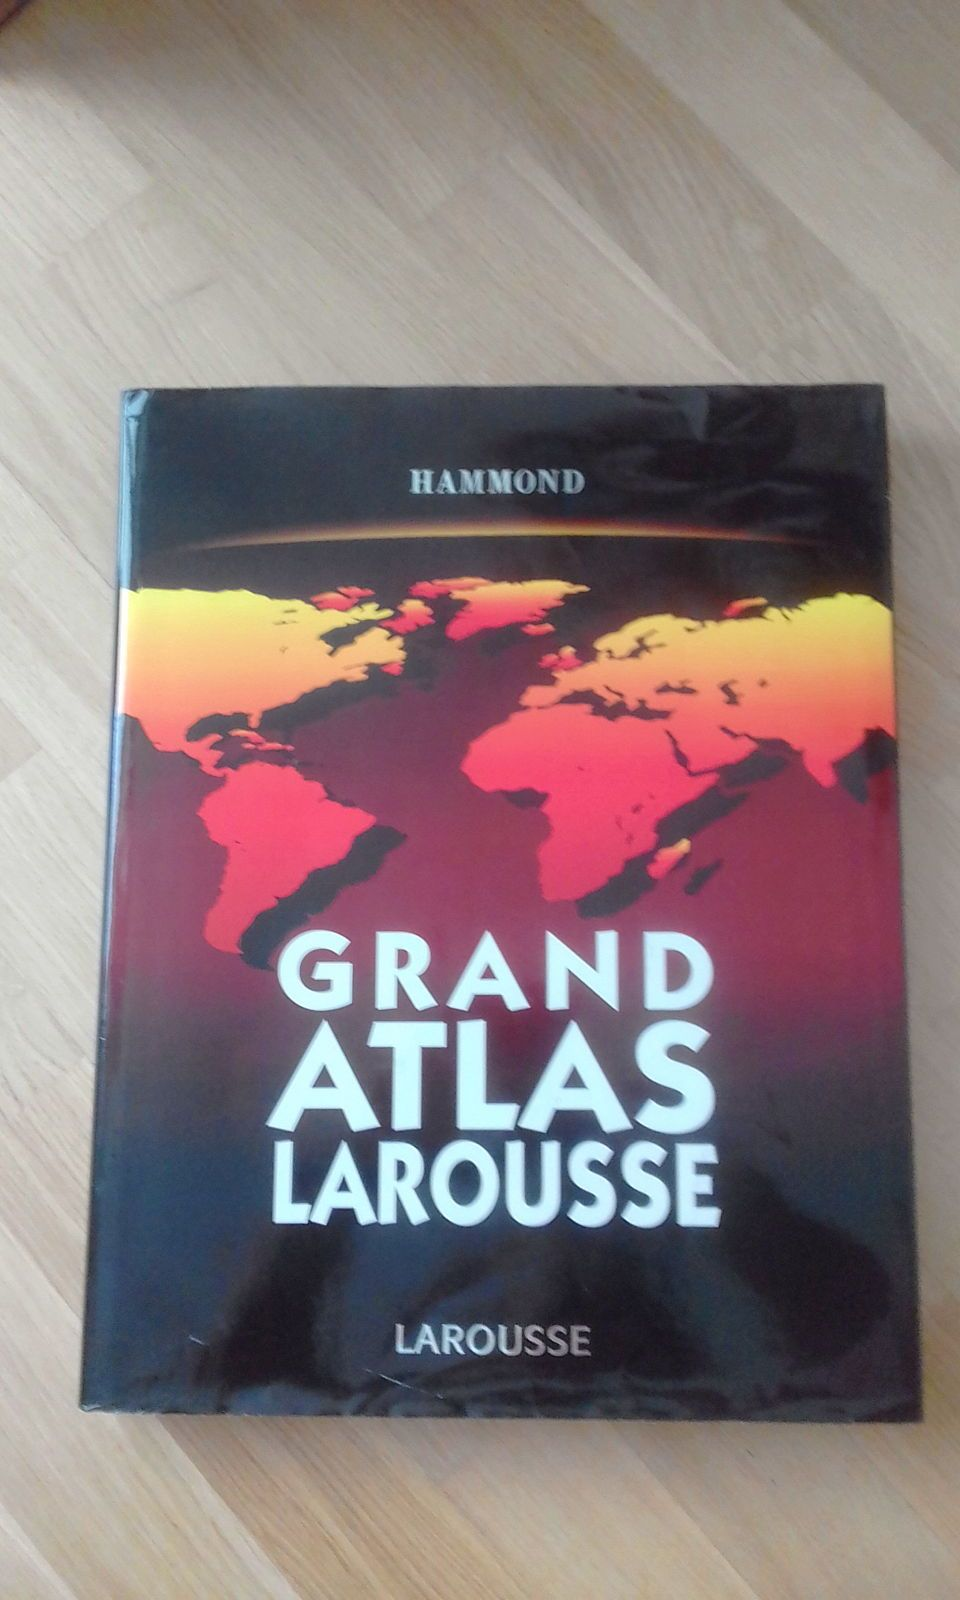 Grand Atlas Larousse/Hammond